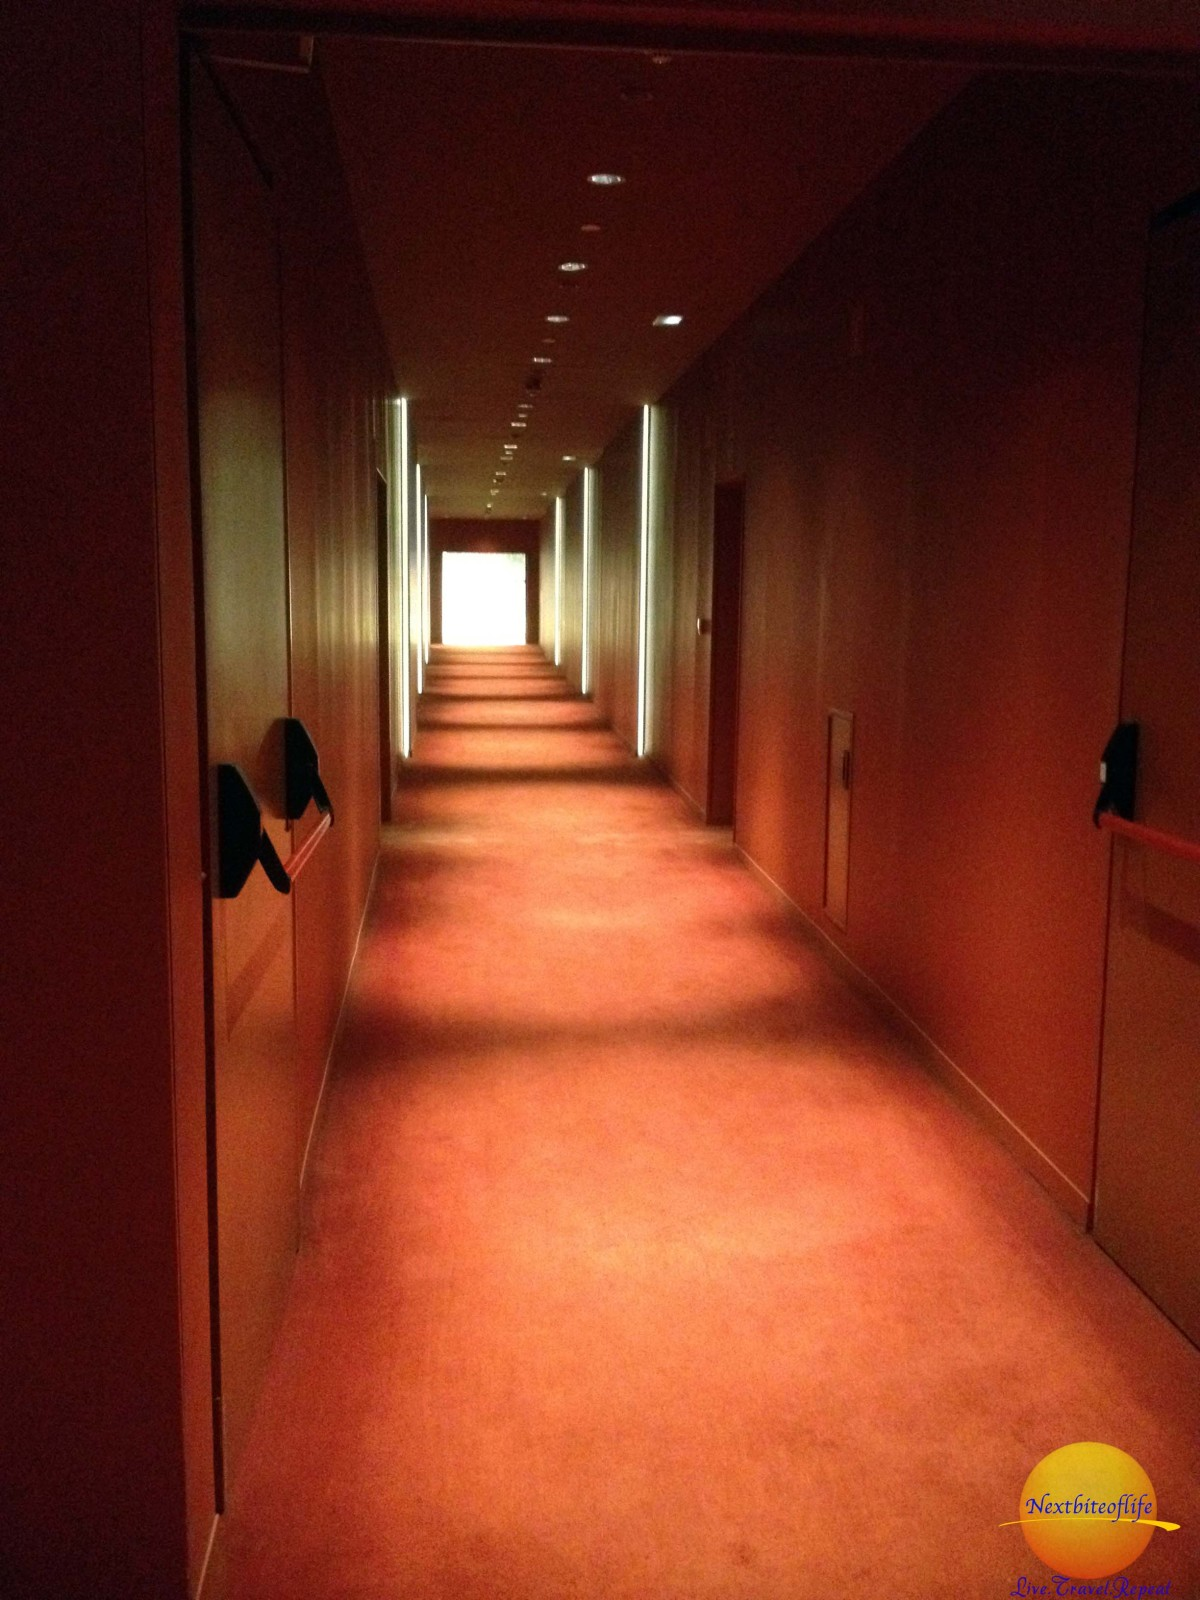 The hallways are dimly lit, and l think on purpose too. You automatically find yourself whispering so as not to disturb anyone.